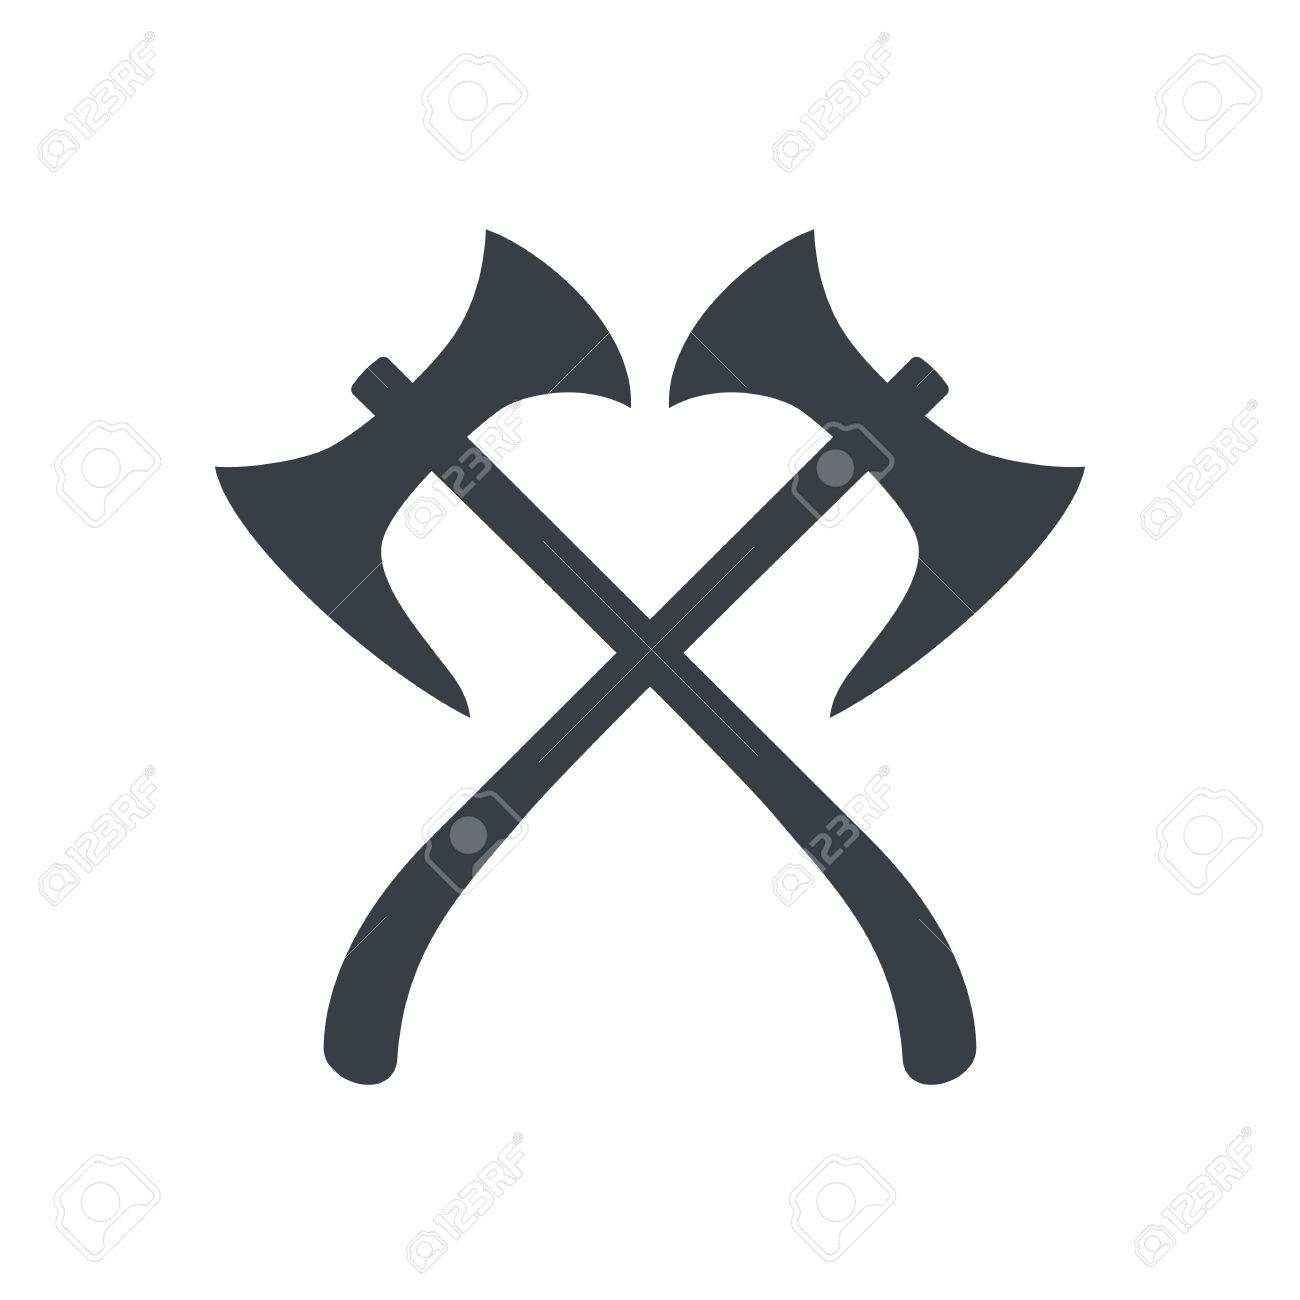 crossed axes silhouette, medieval weapons, vector illustration.